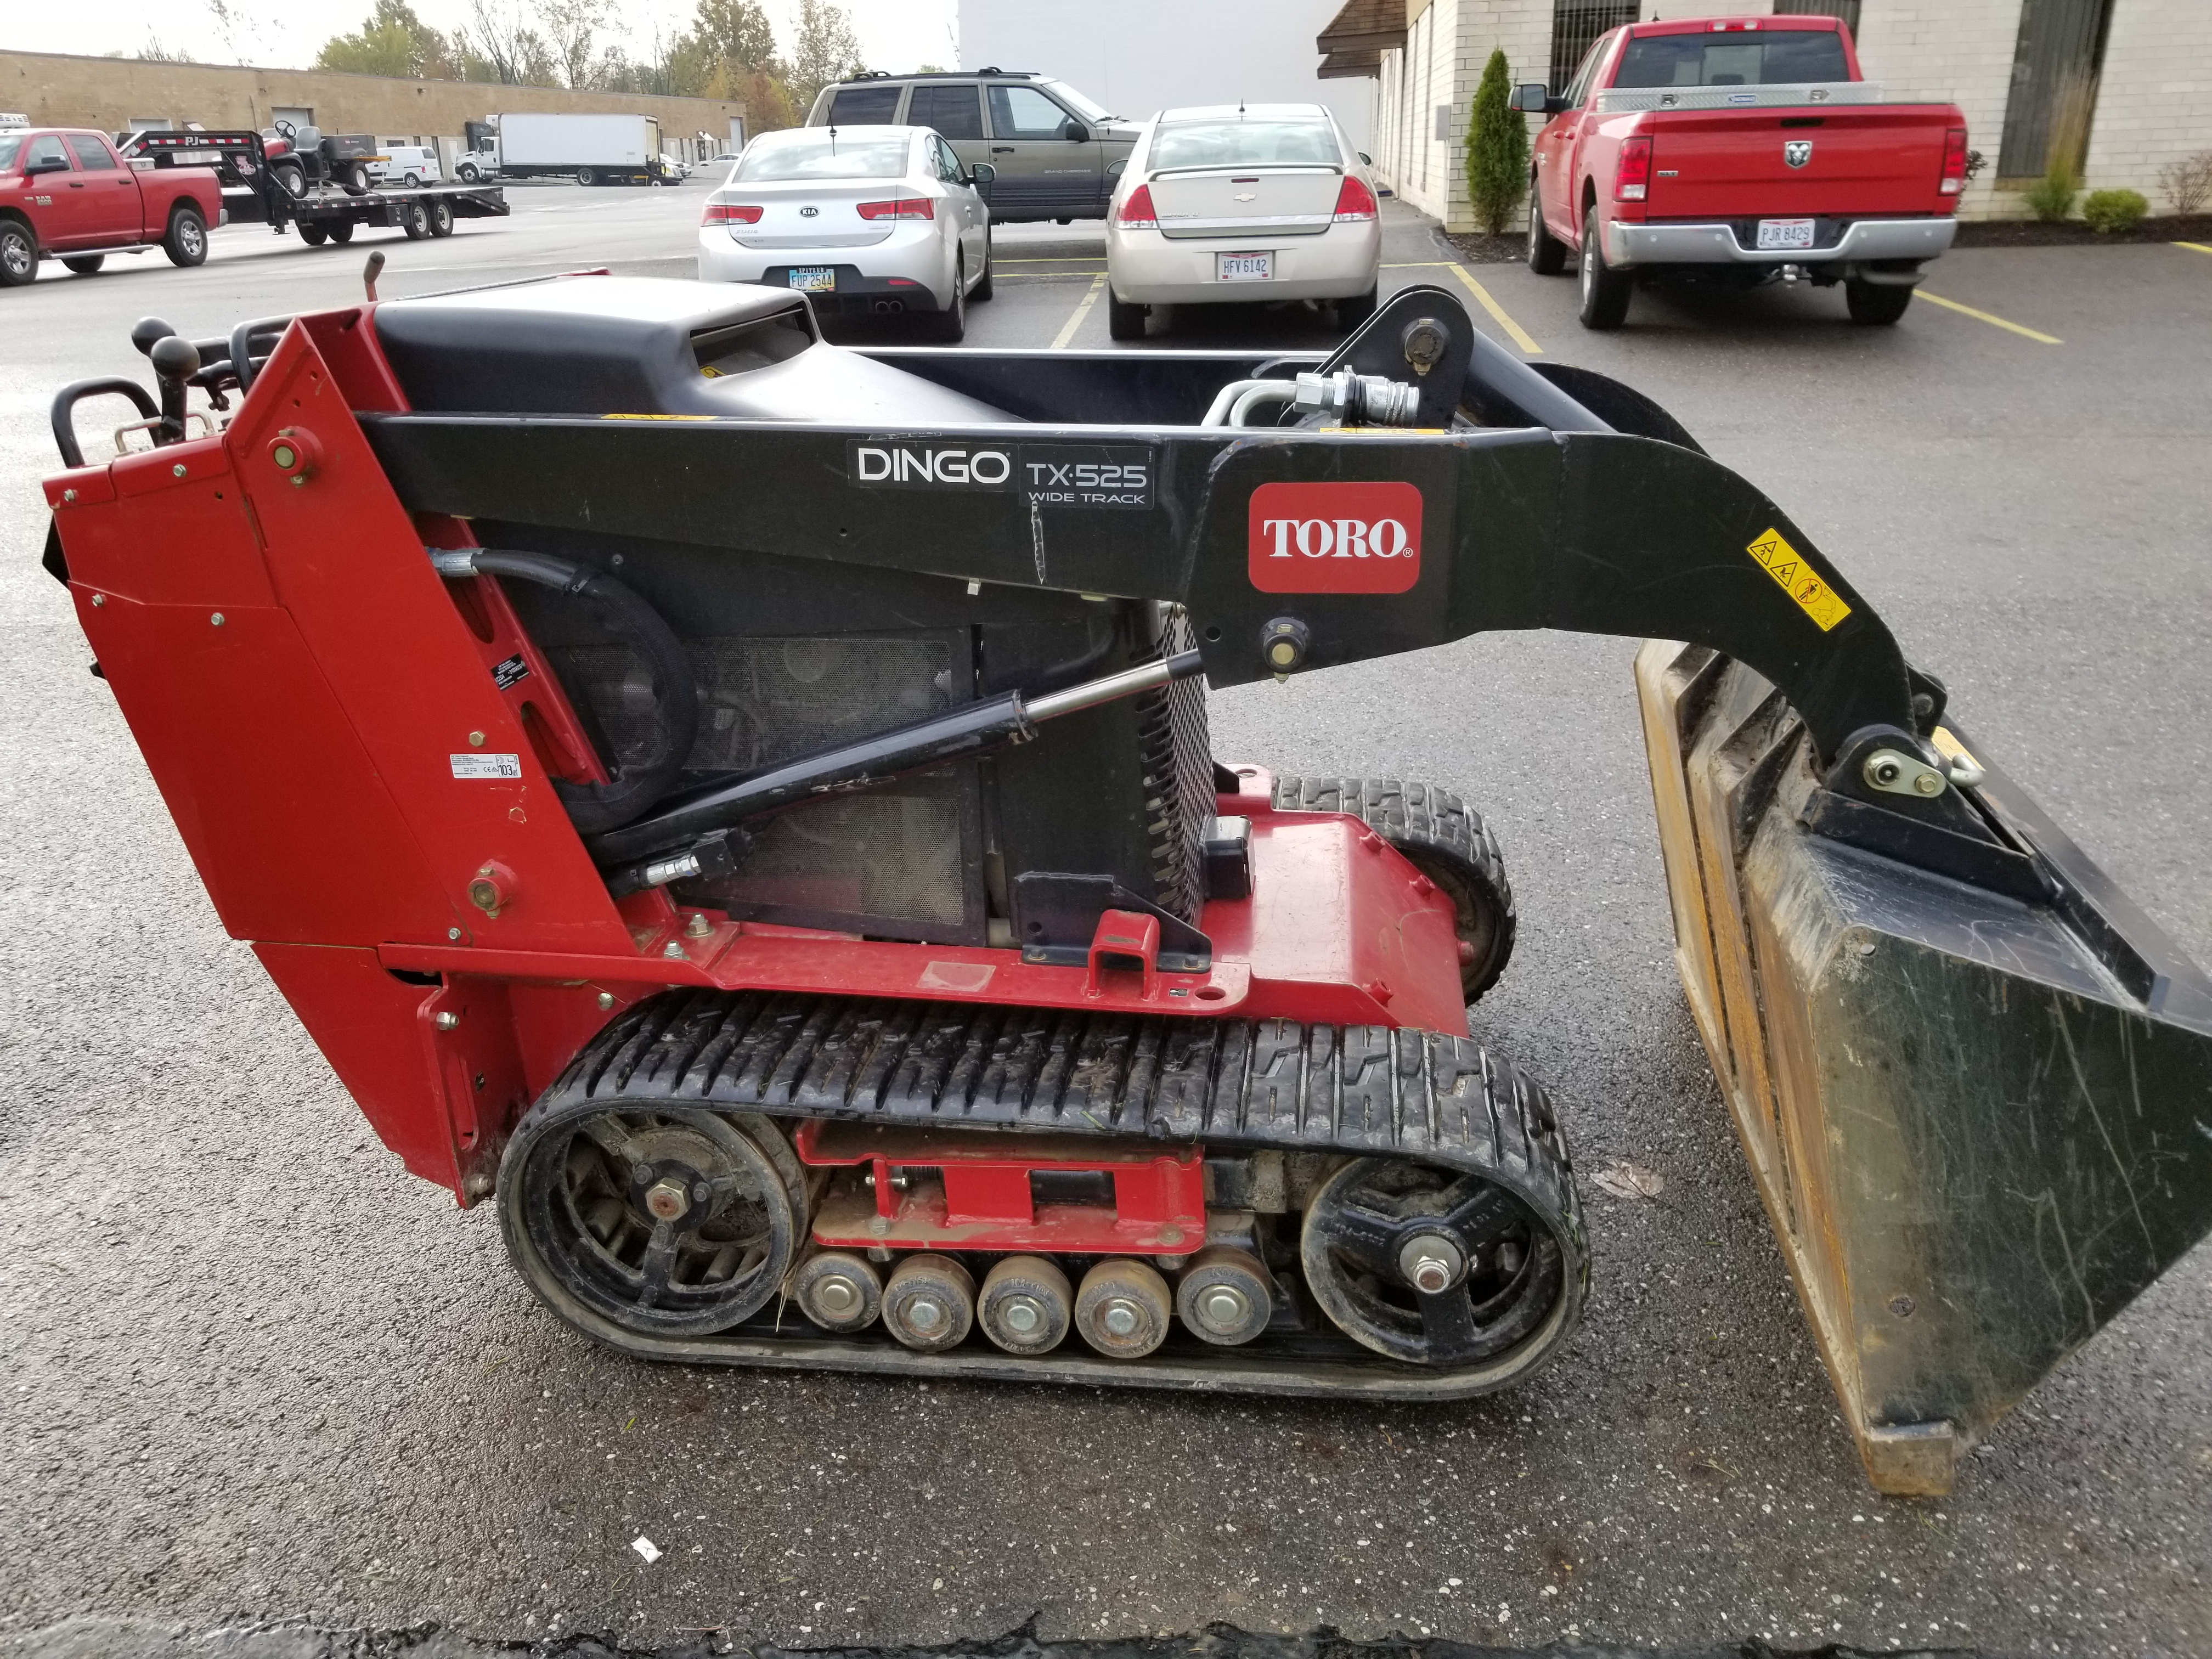 Featured Image for 49. Toro Dingo TX525 Wide Track